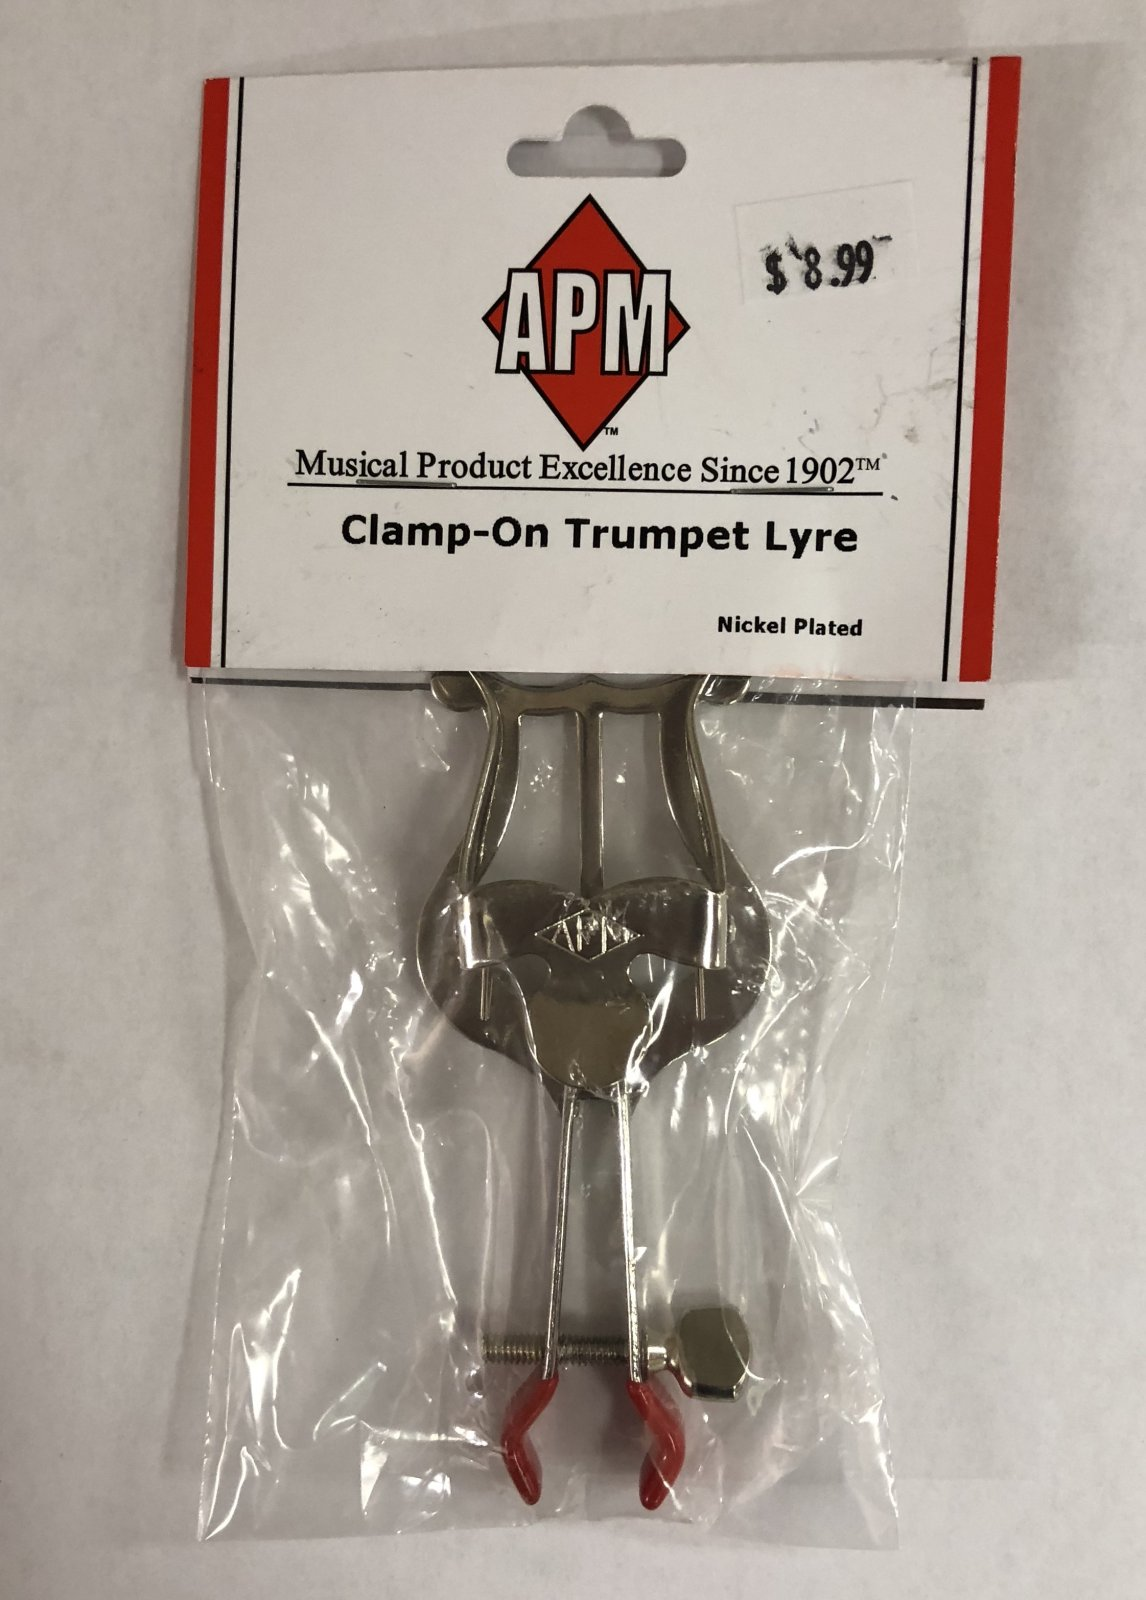 APM Clamp-On Trumpet Lyre